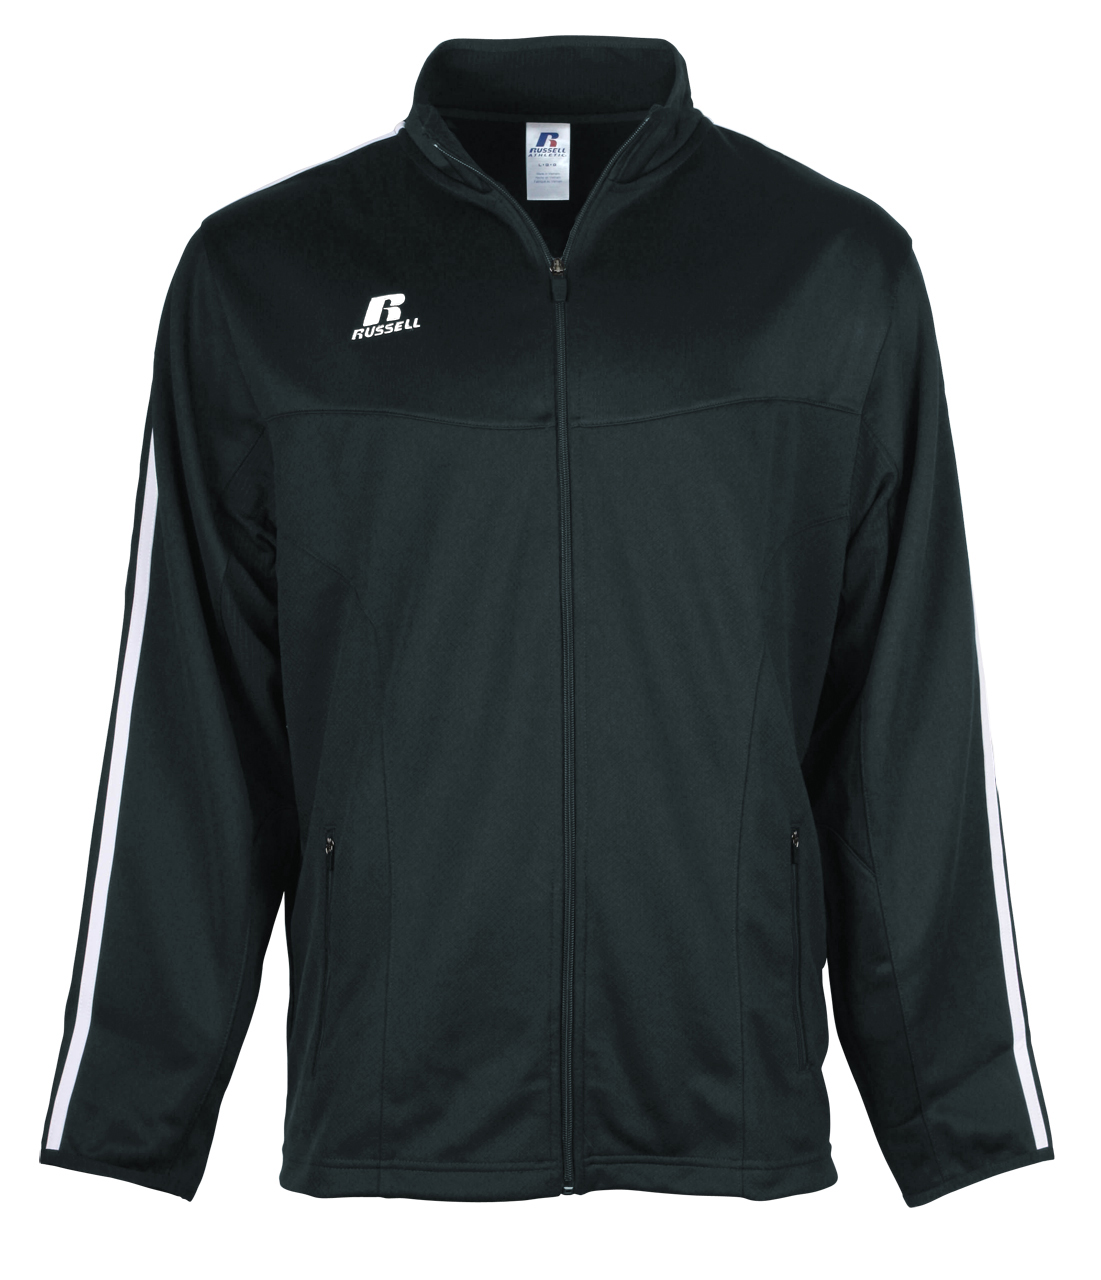 Picture of RUSSELL Mens Team Game Day Warm-up Jacket